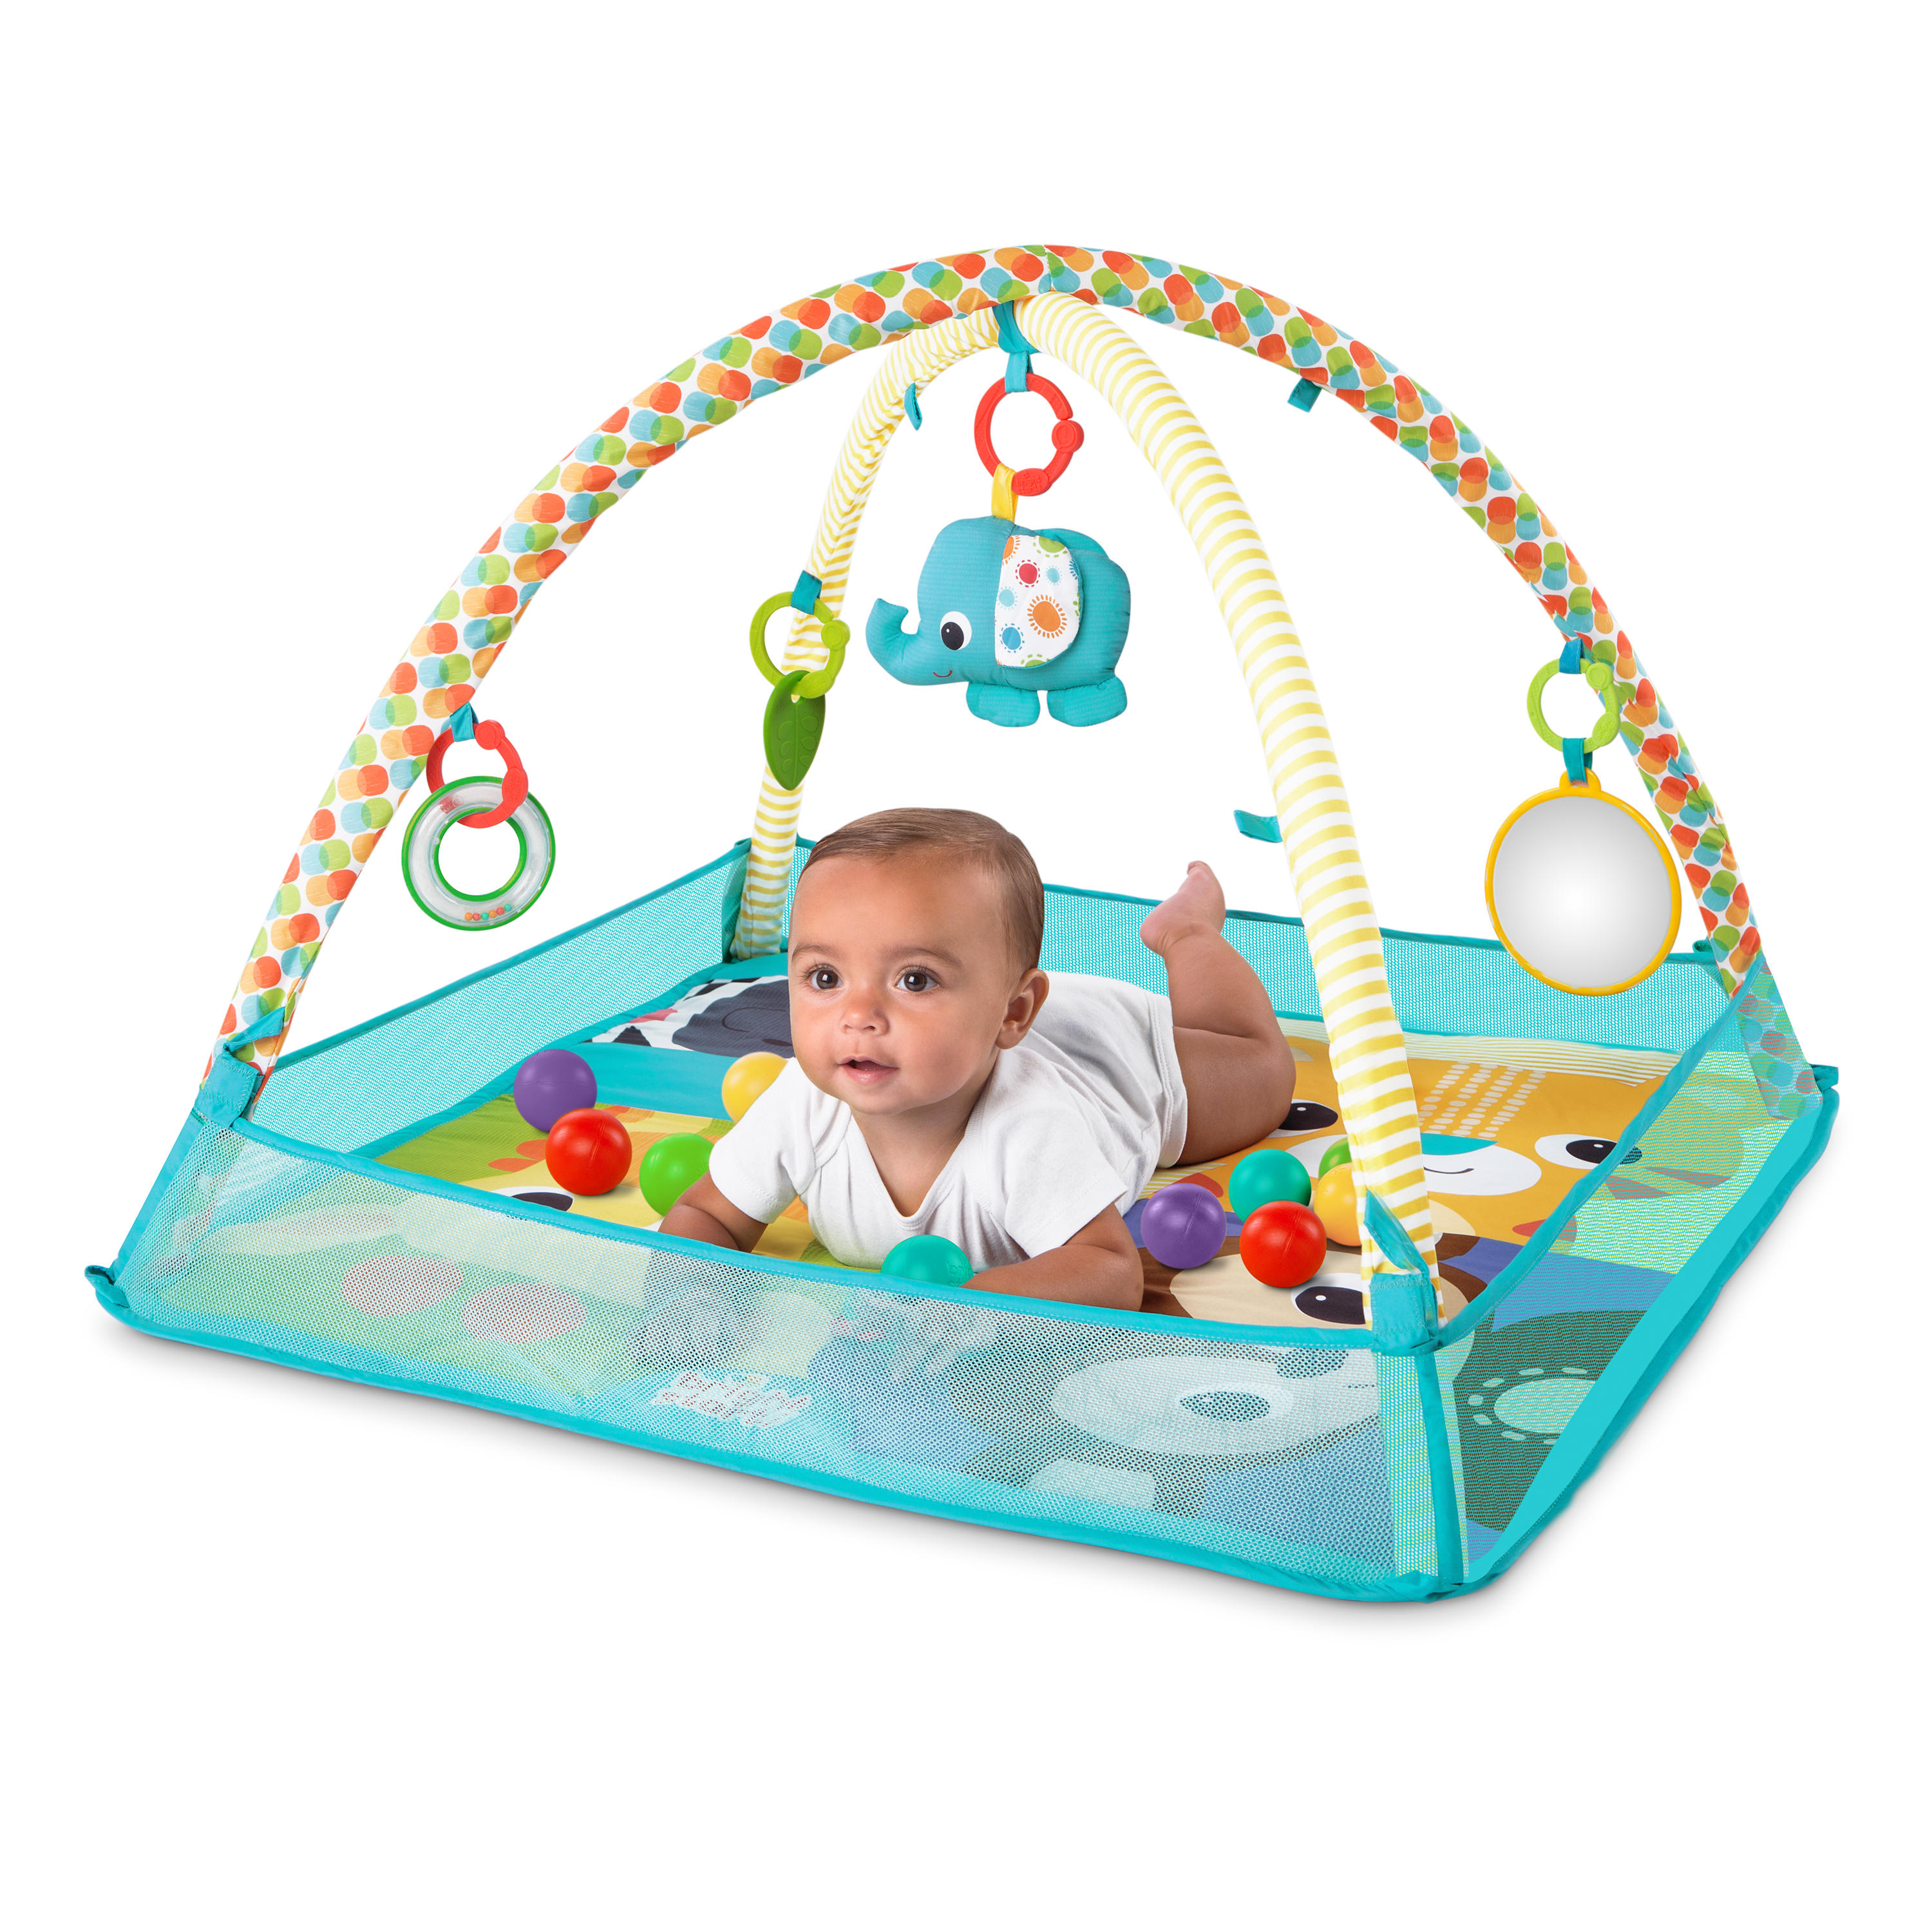 More-in-One Ball Pit Fun